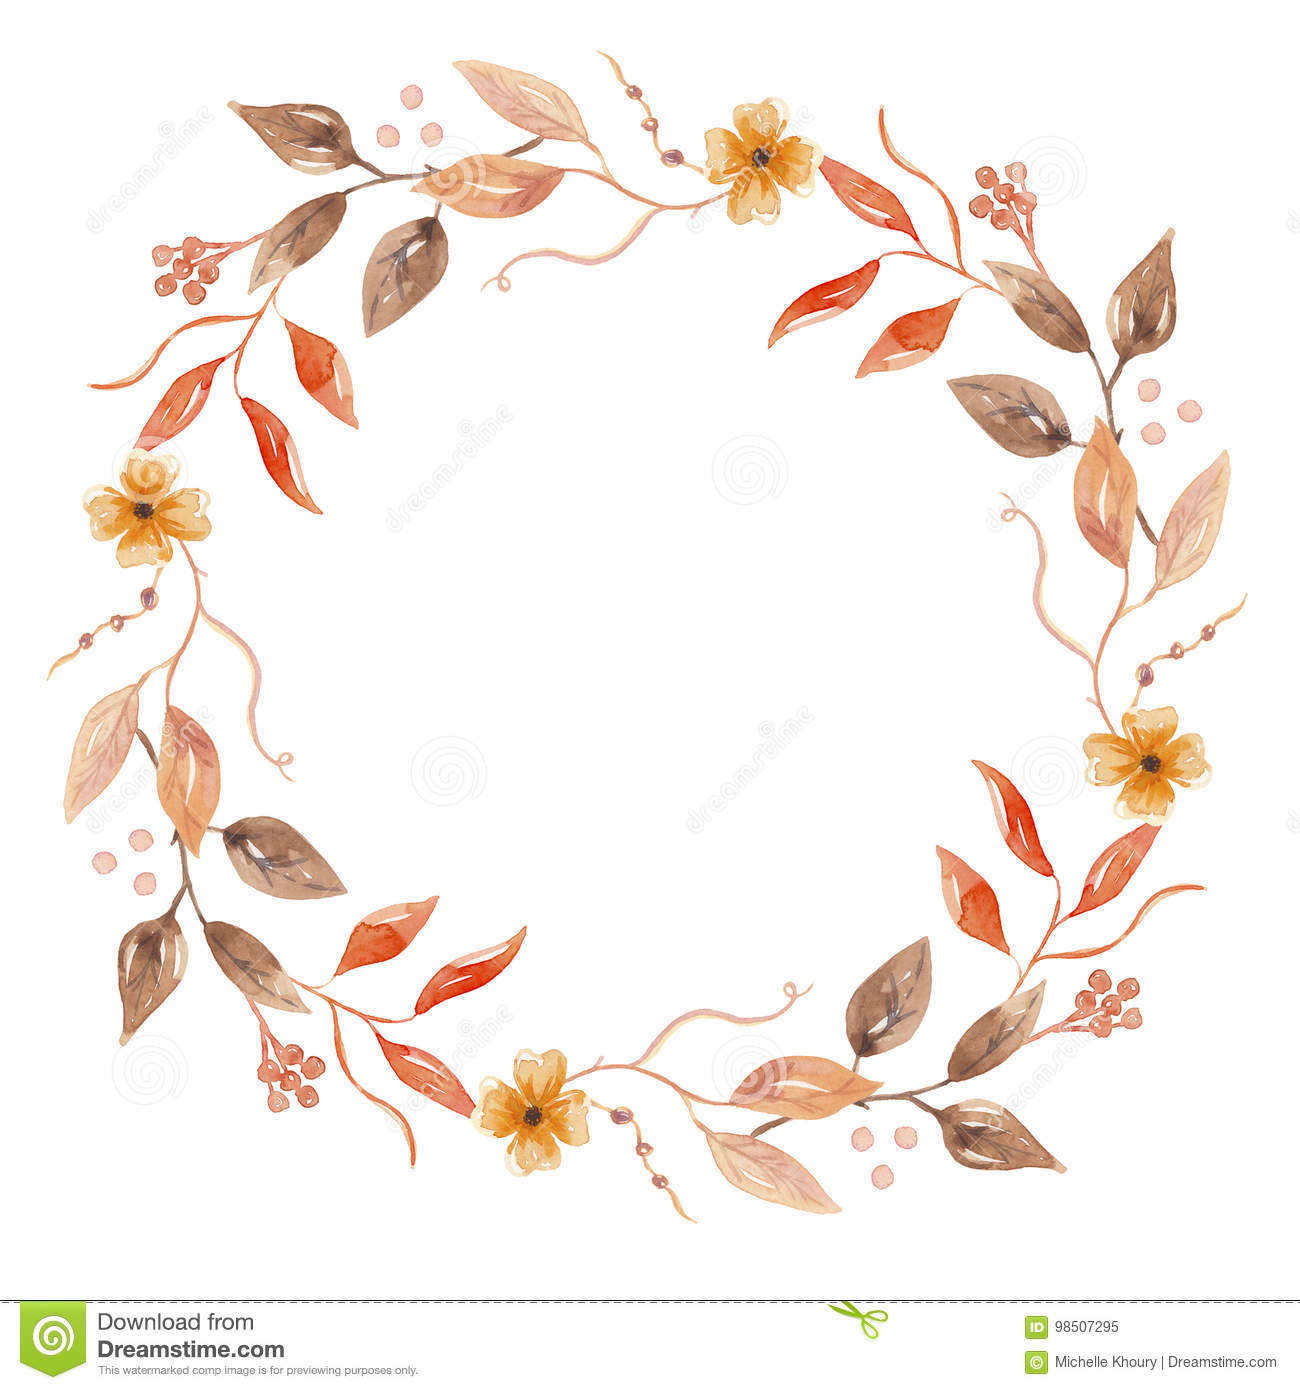 Autumn Watercolor Fall Flower Hand Painted Garland Floral ...